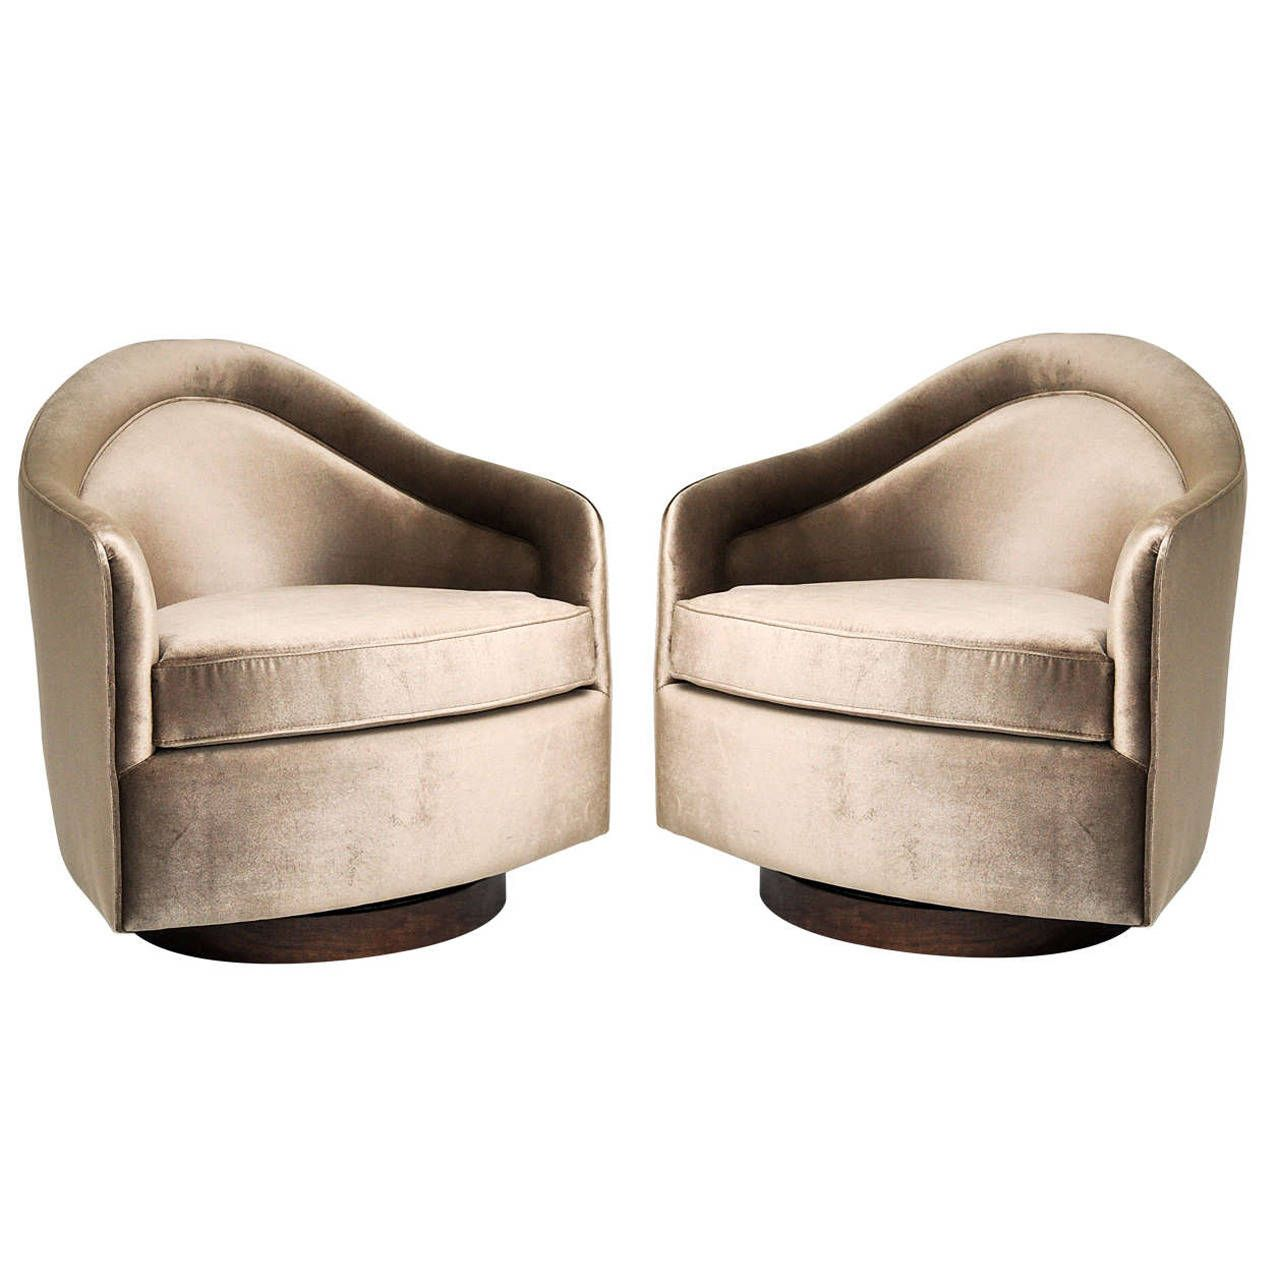 Captivating View This Item And Discover Similar Swivel Chairs For Sale At   Pair Of  Rock And Swivel Chairs By Milo Baughman.